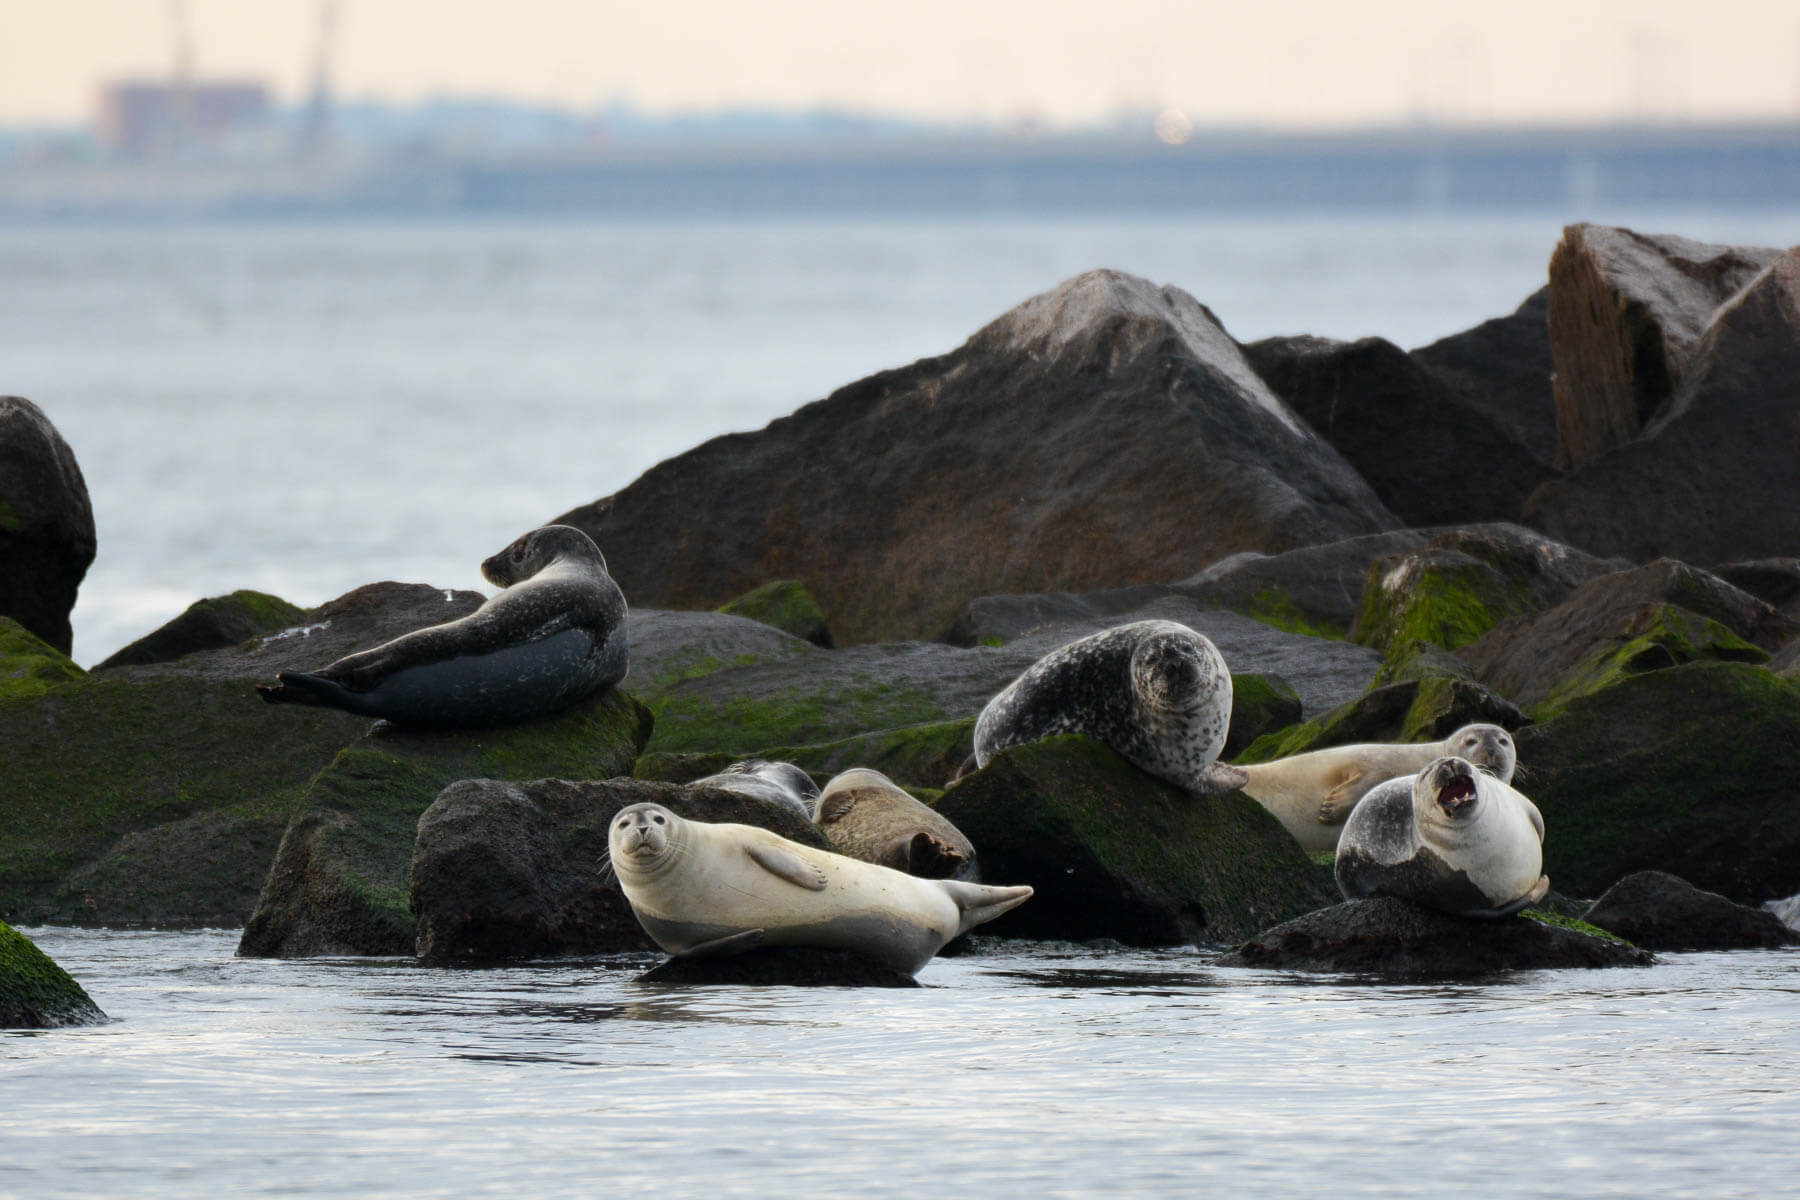 Harbor seals are becoming a regular highlight of winter in the Chesapeake Bay | Chesapeake Bay Program